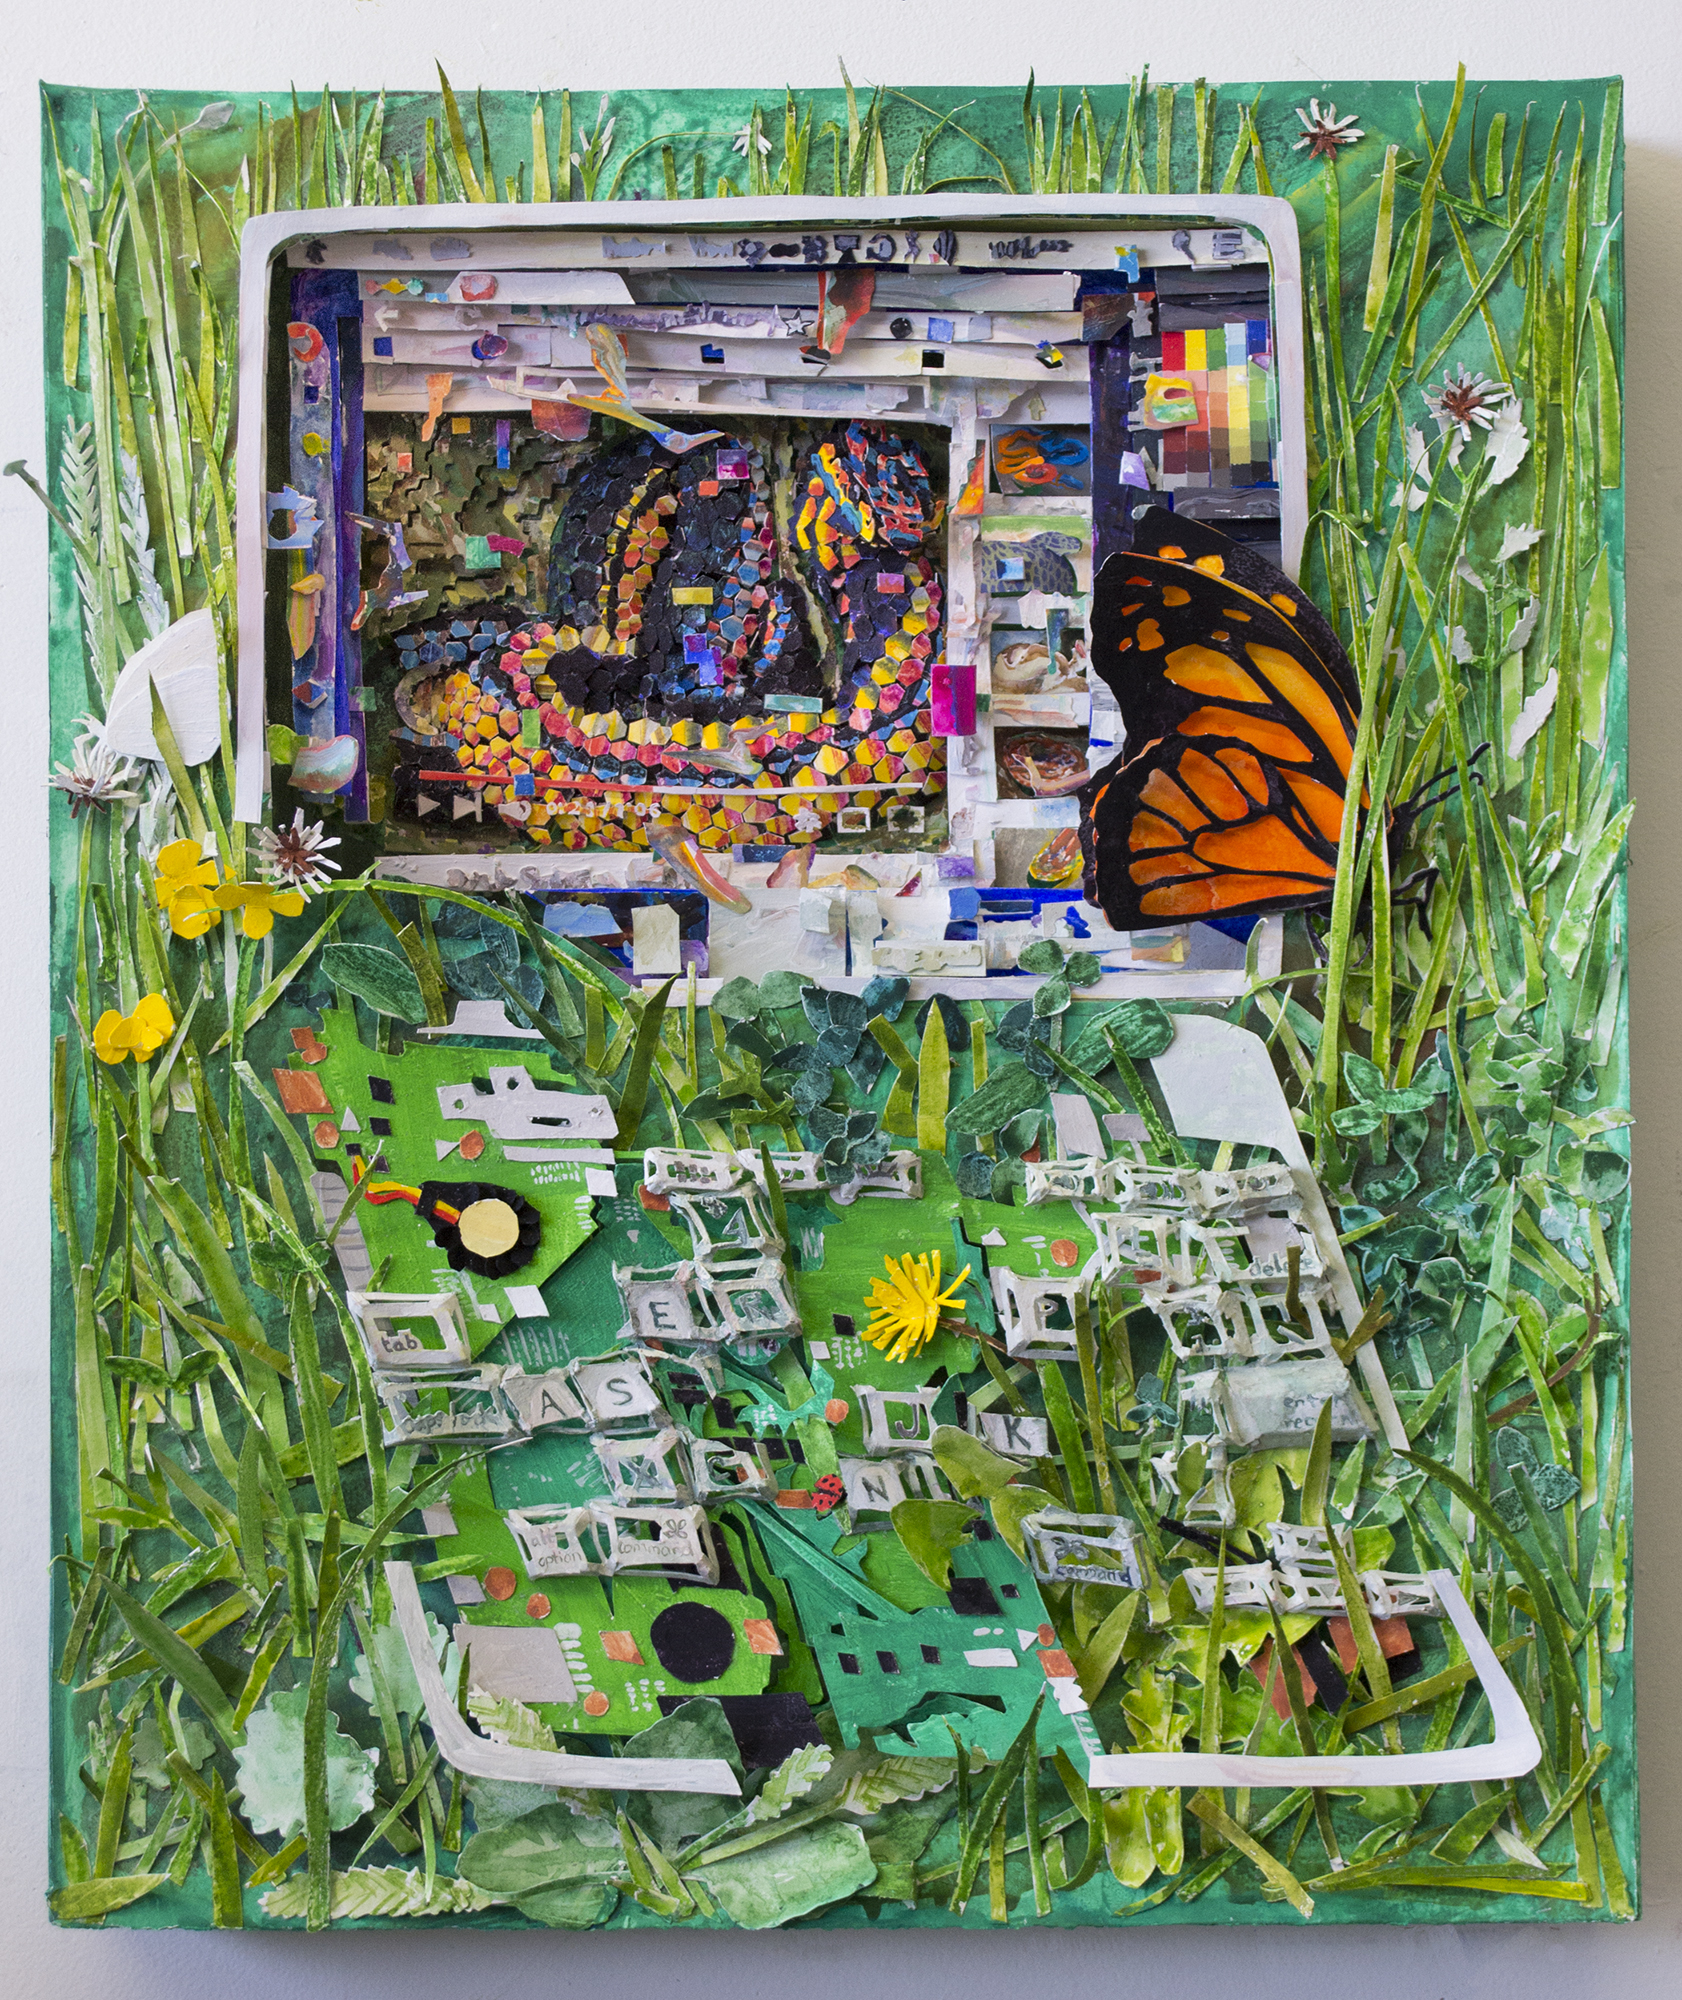 Return of the Garden, 2018, gouache on paper construction, 21 x 18 x 4.5 inches